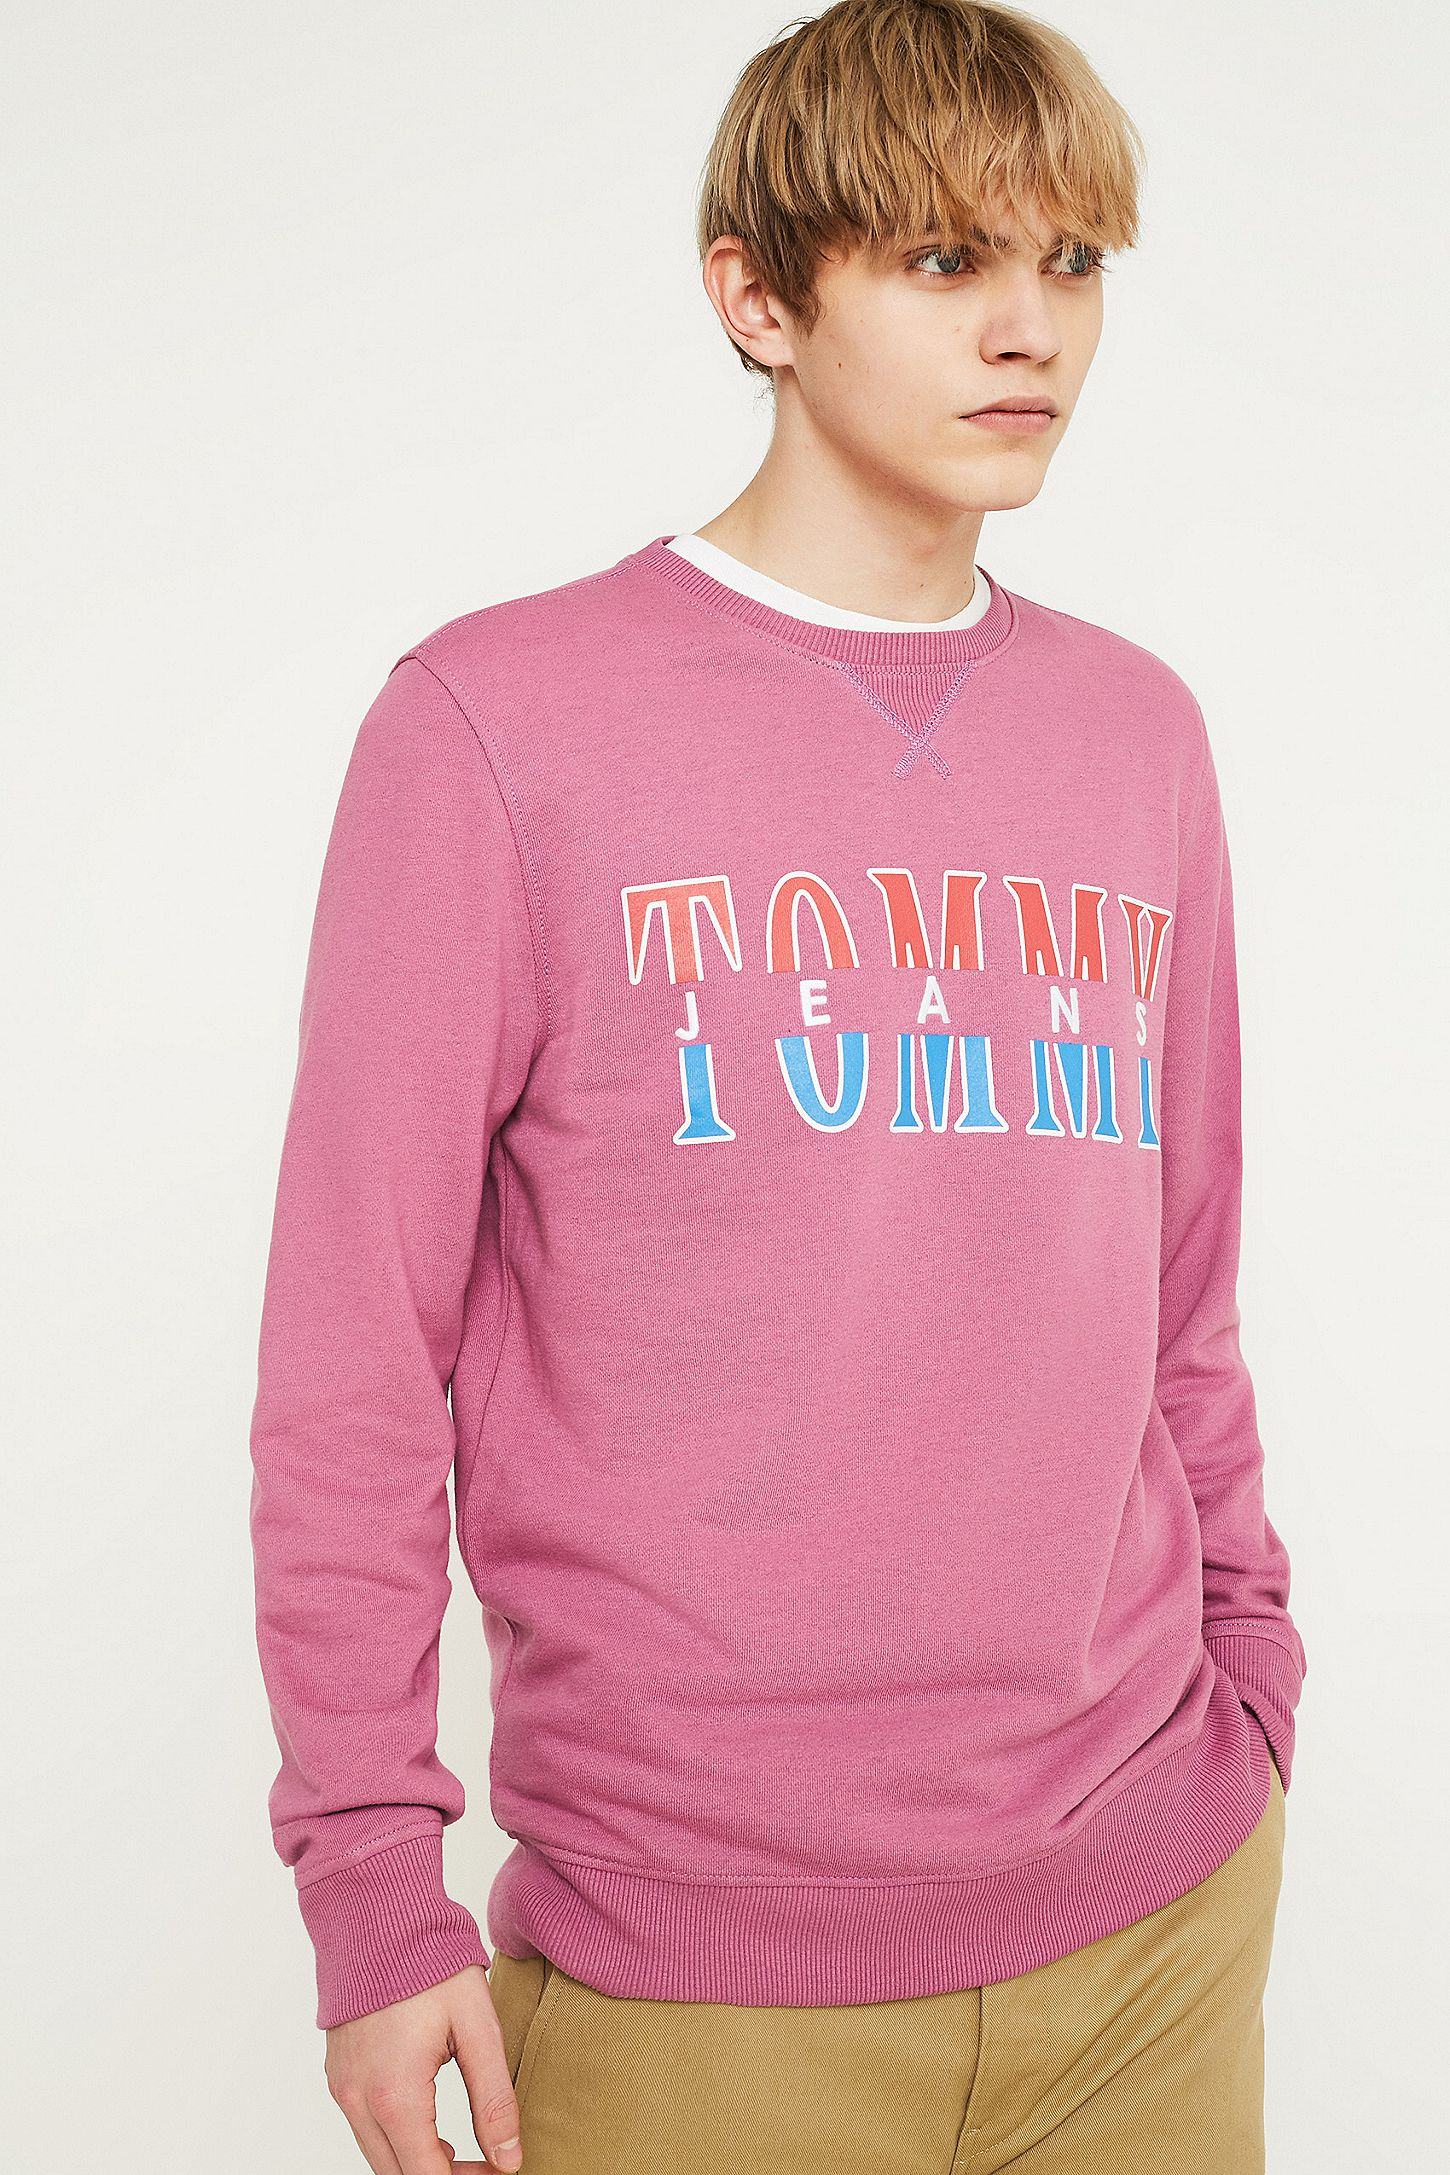 947d38b6 Tommy Jeans 90s Print T Shirt Pink